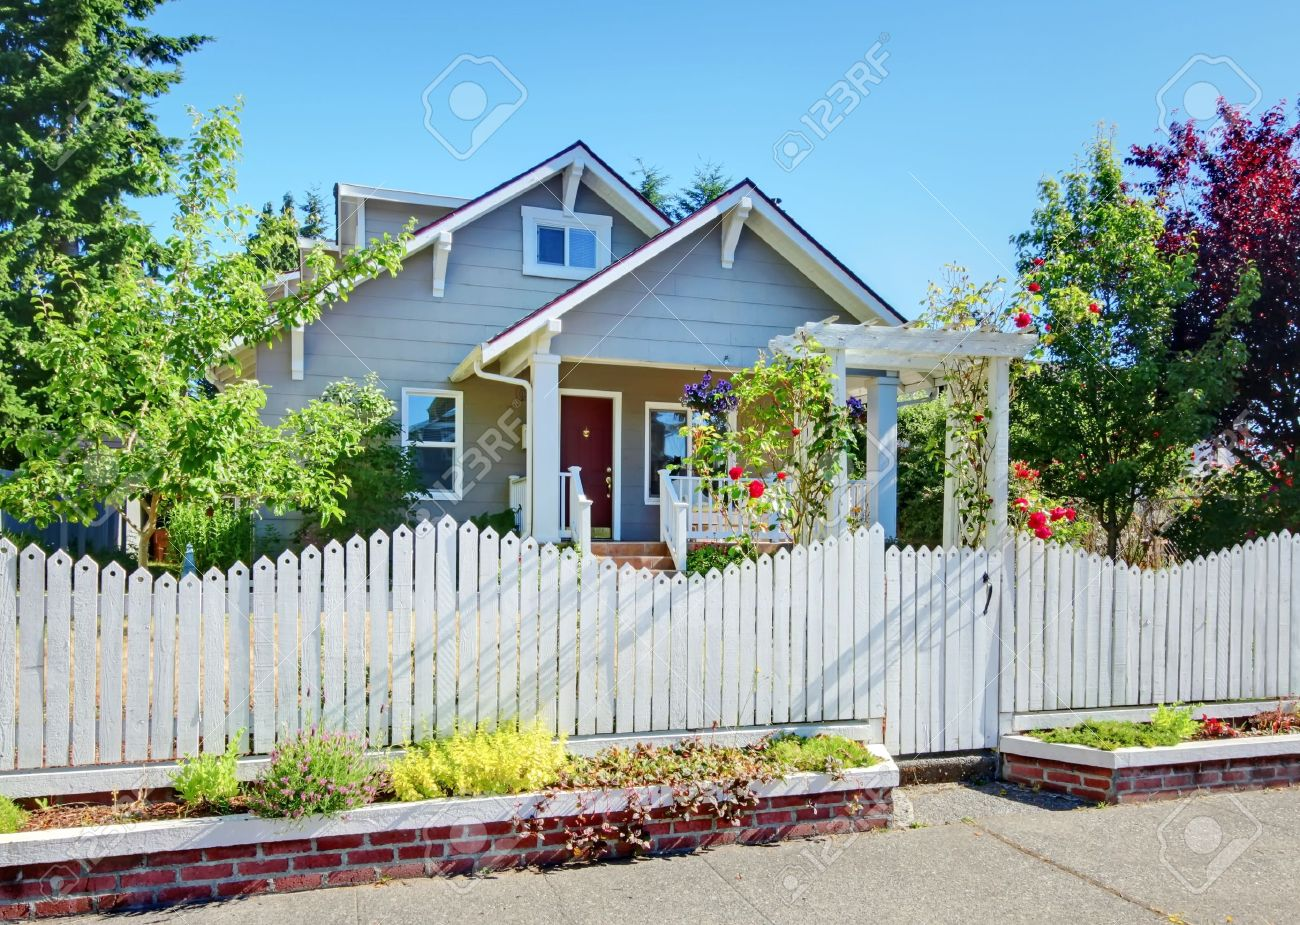 craftsman style house stock photos royalty free craftsman style craftsman style house grey small cute house with white fence and roses